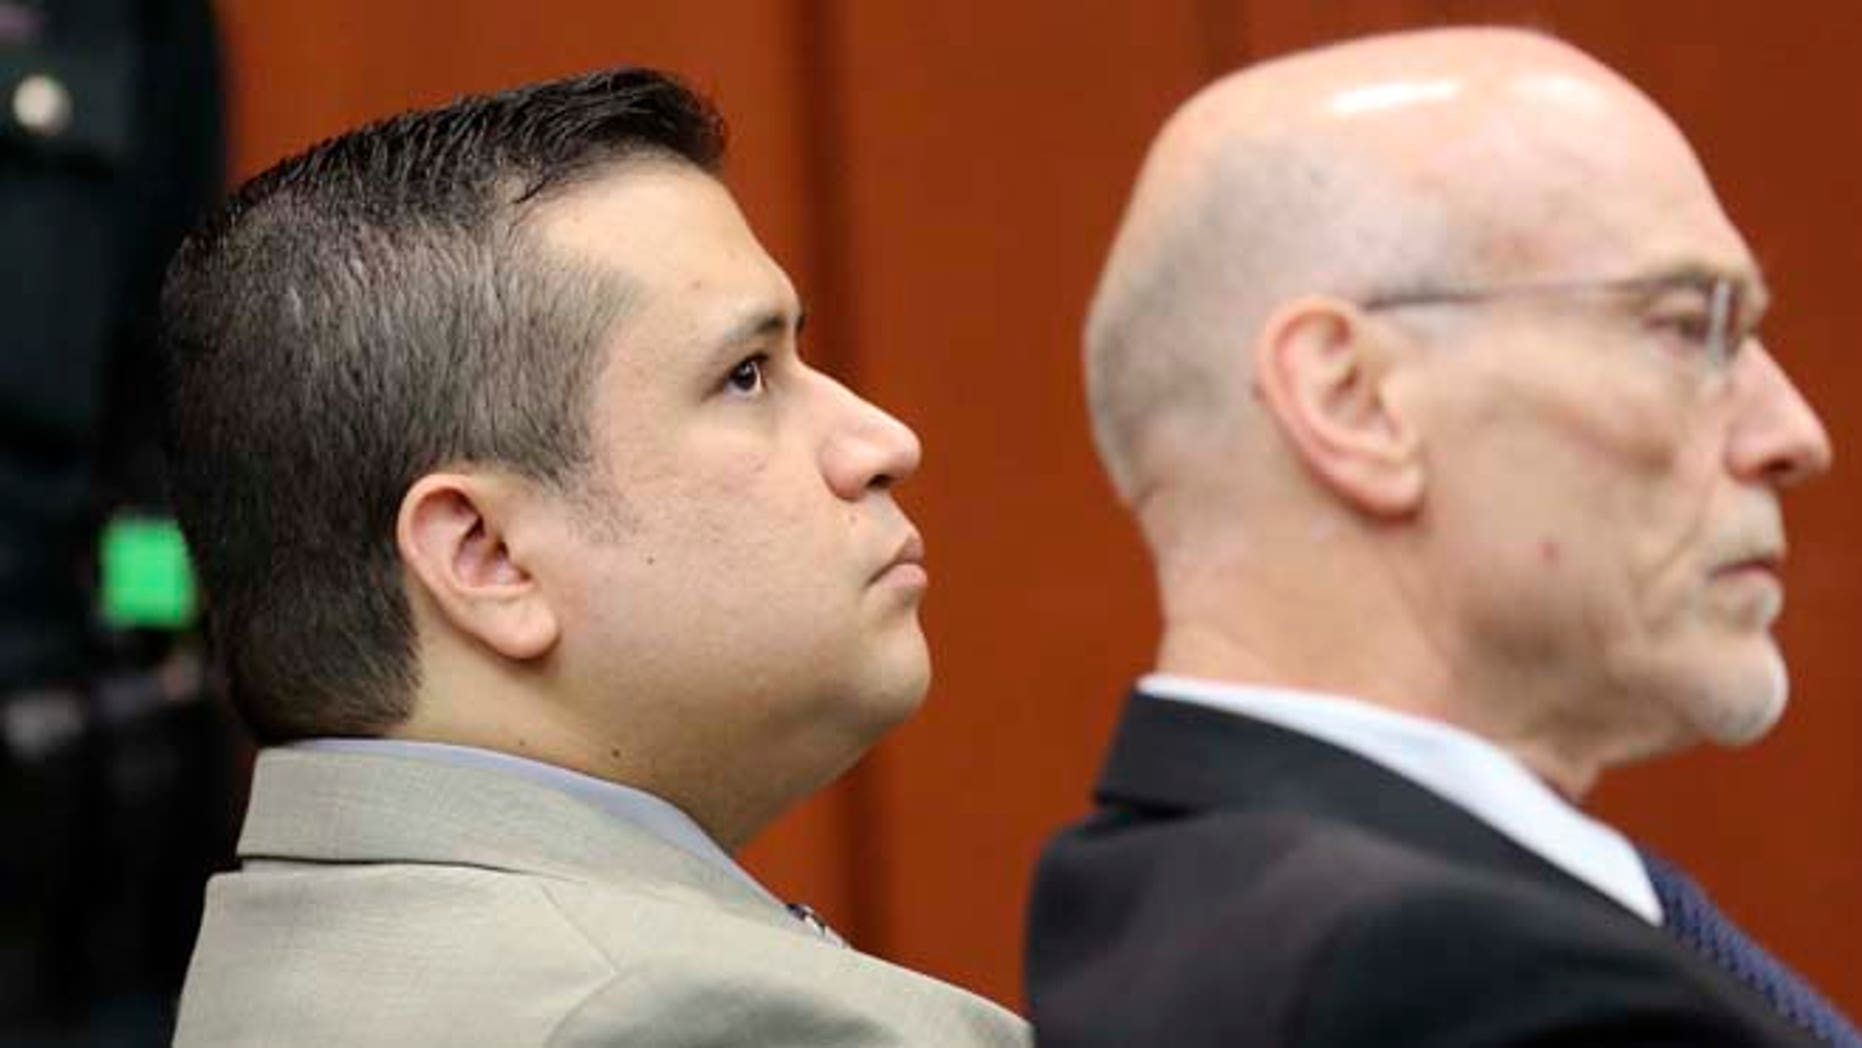 June 6, 2013: George Zimmerman, left, sits in Seminole circuit court with co-counsel Don West, during a pre-trial hearing, in Sanford, Fla. (AP/Pool/Orlando Sentinel)